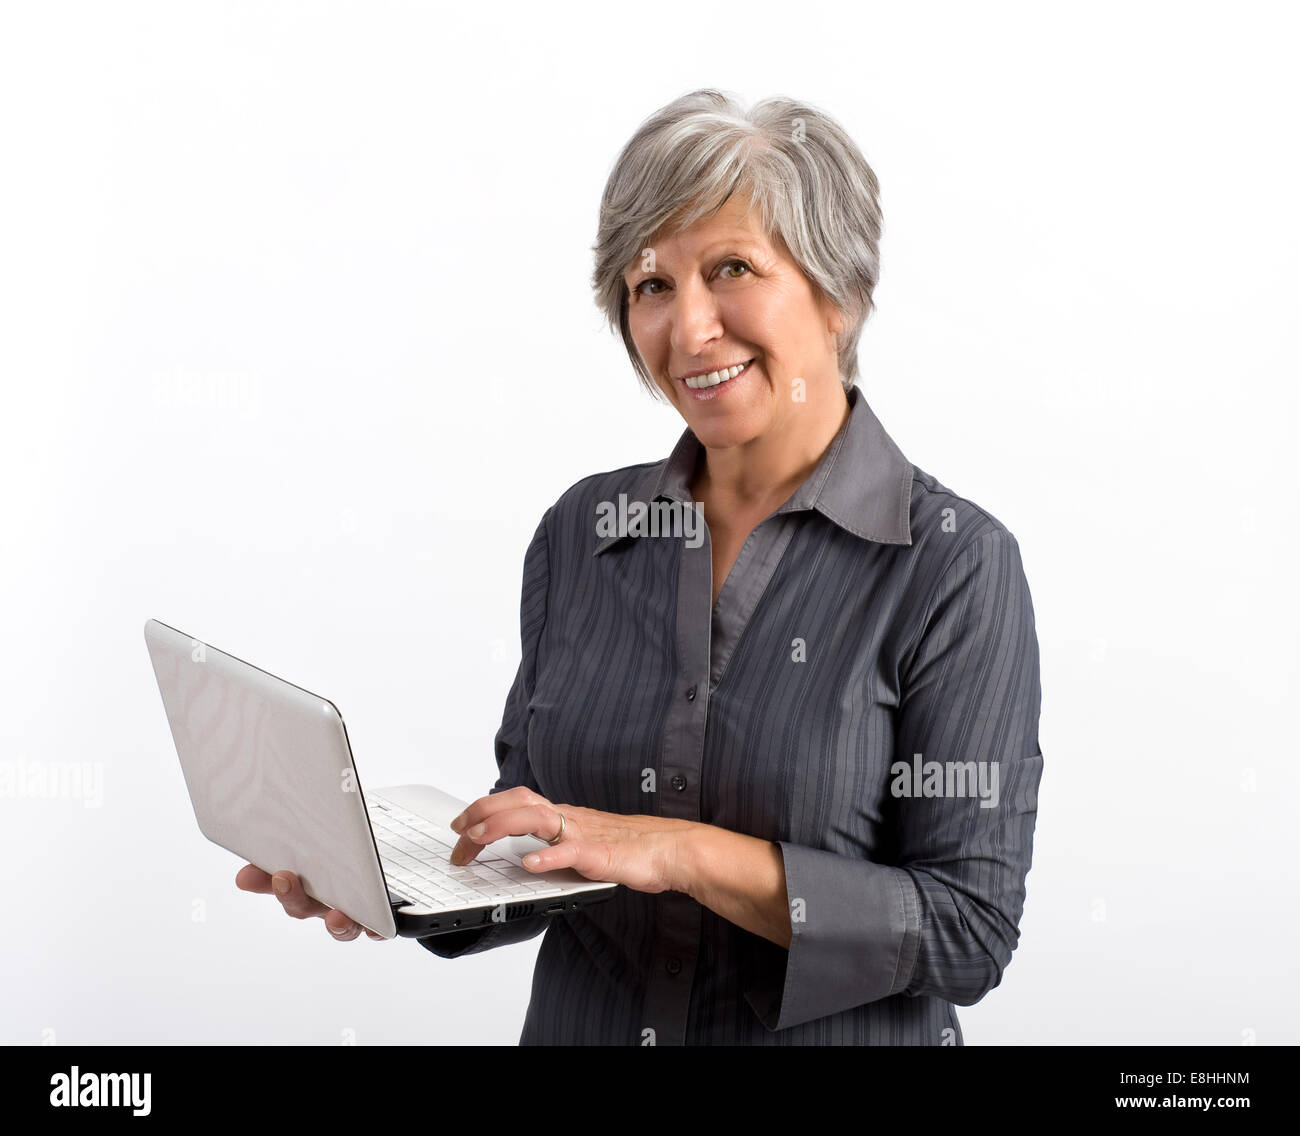 Smiling Woman Holding Laptop - Stock Image